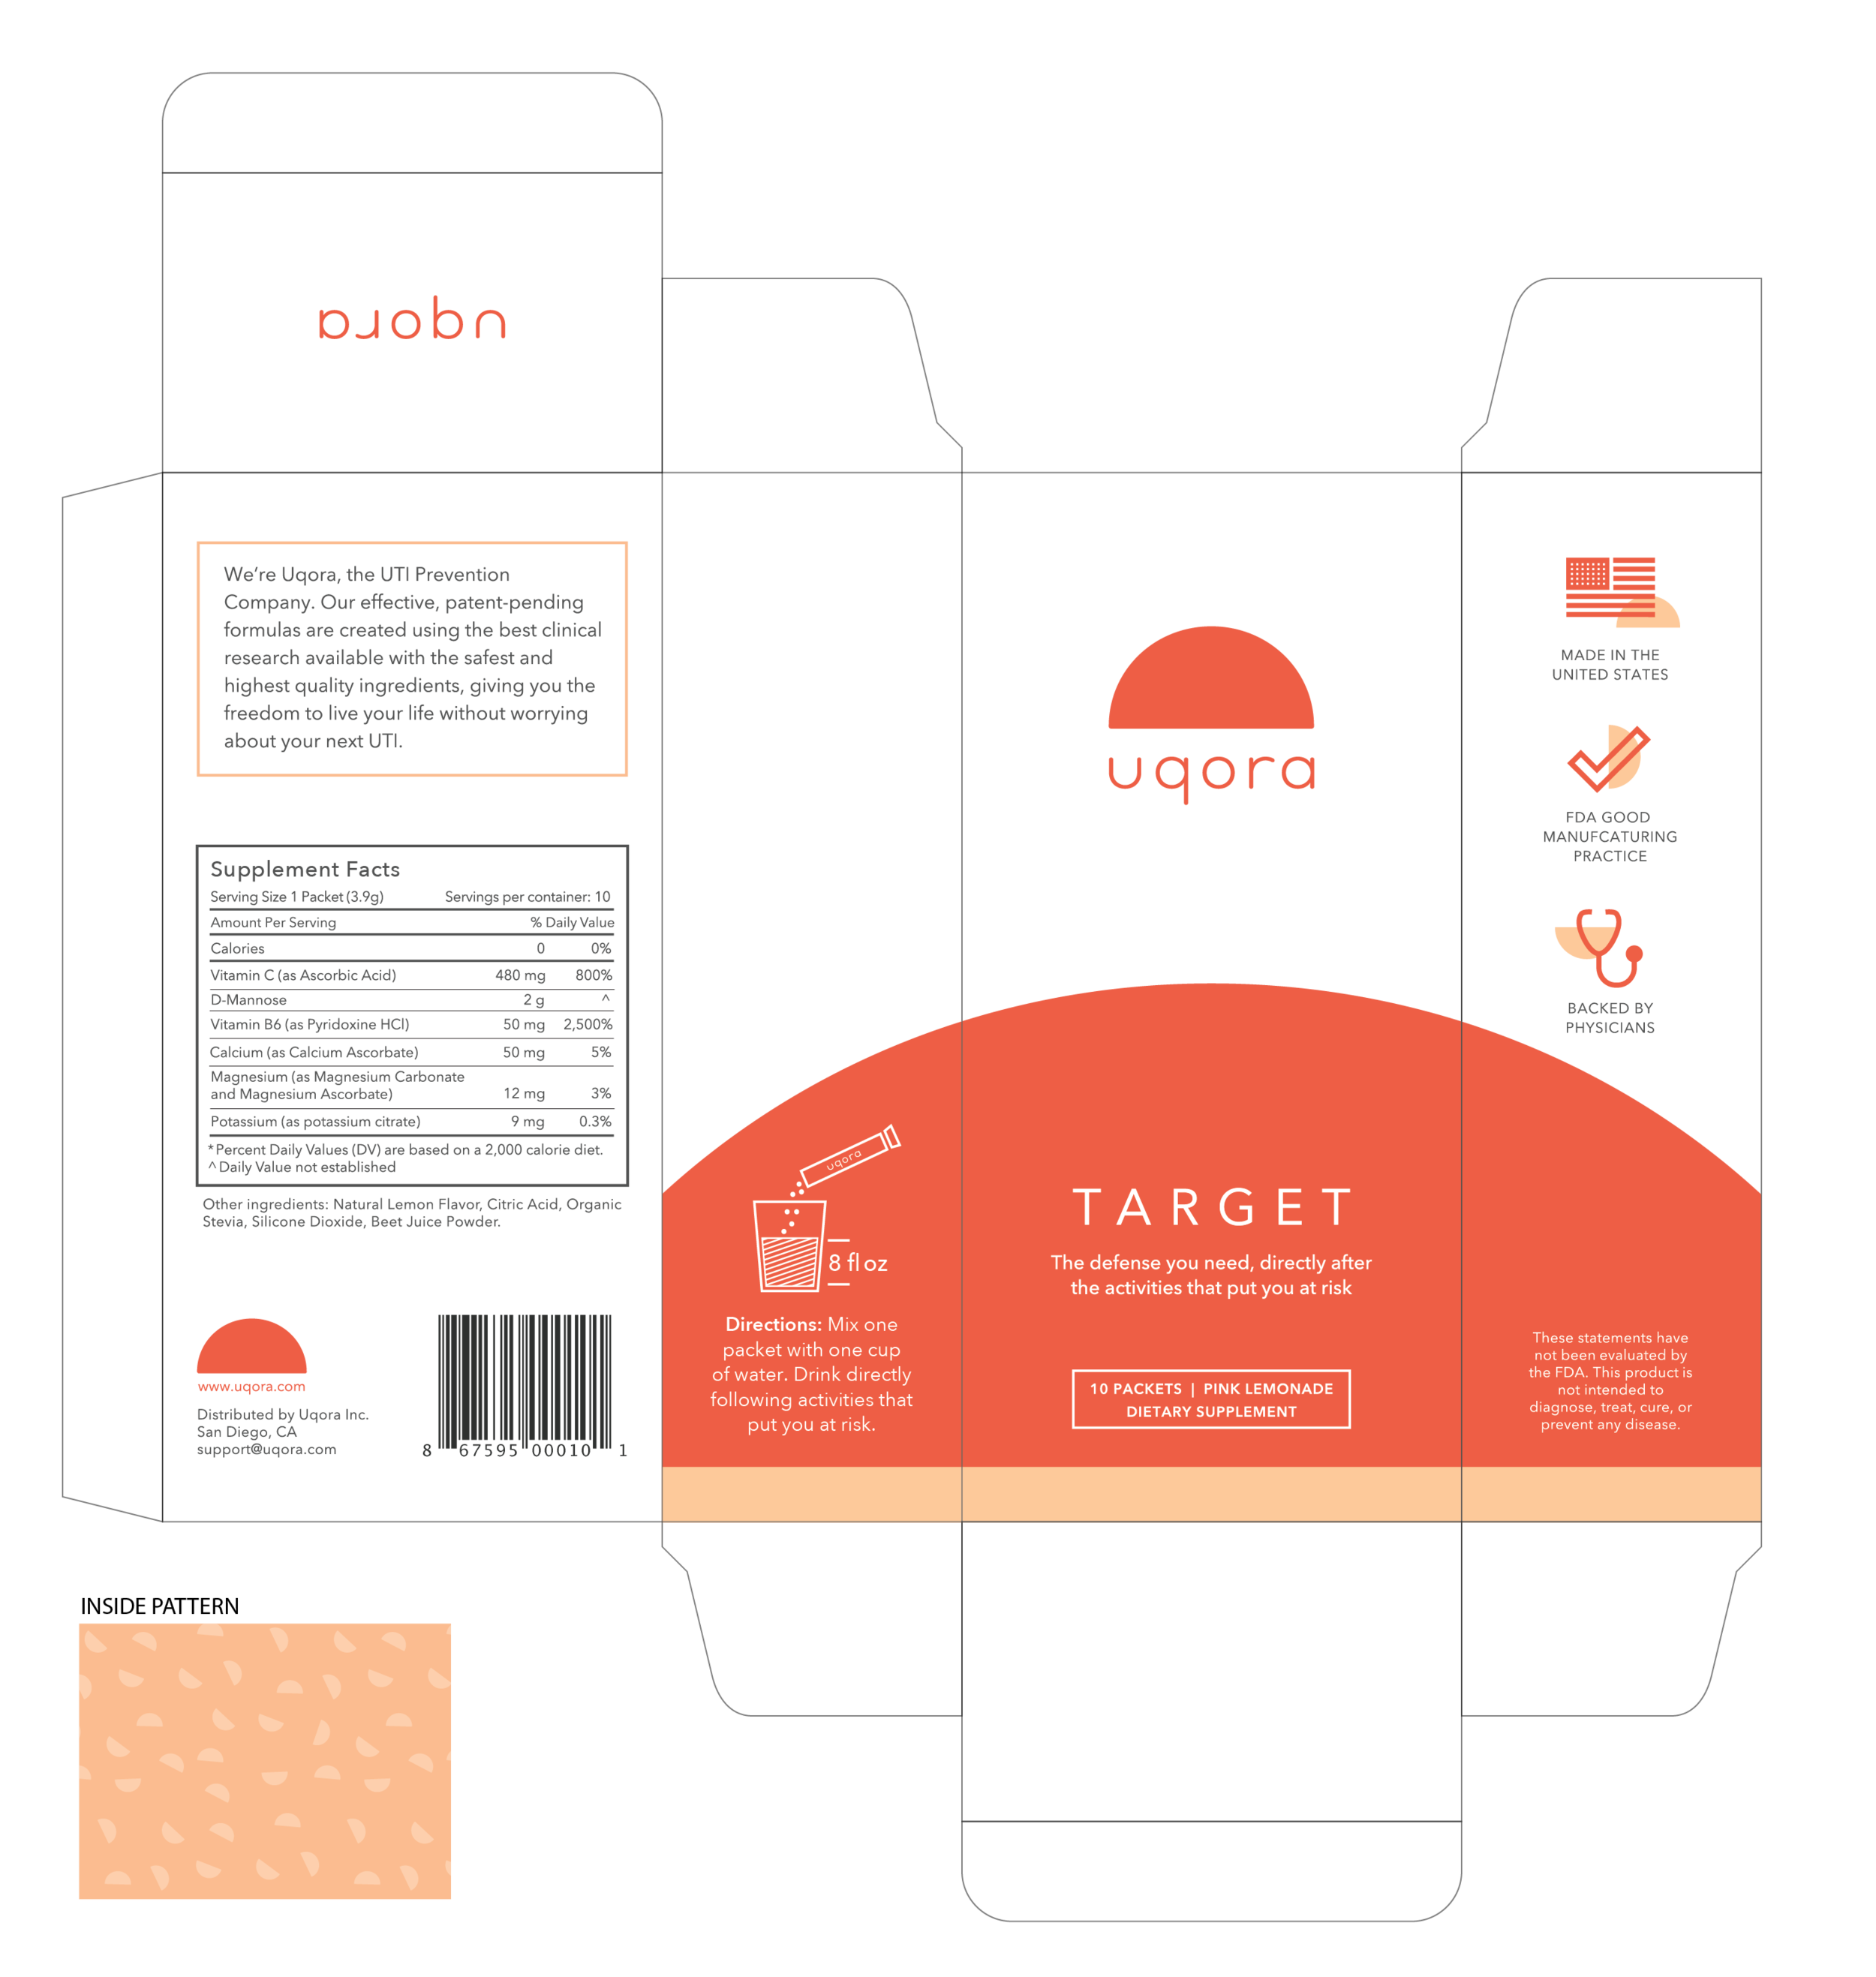 040918 UQORA Target Final Packaging-01.png